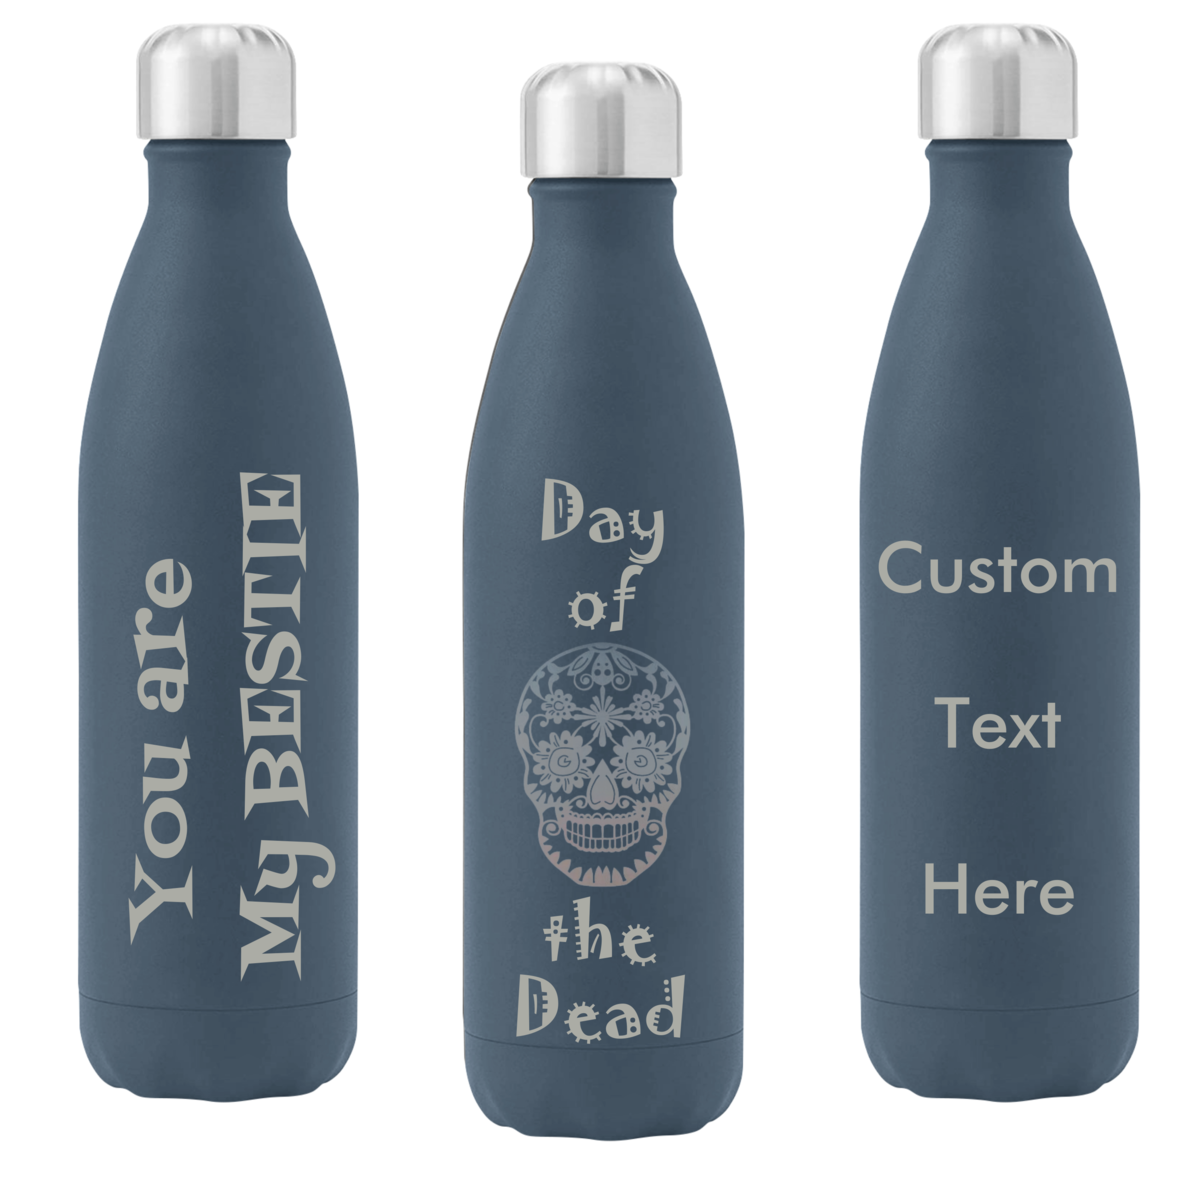 Customized Mugs and Tumblers - Three Colors w/ Personalized Text and or Artwork